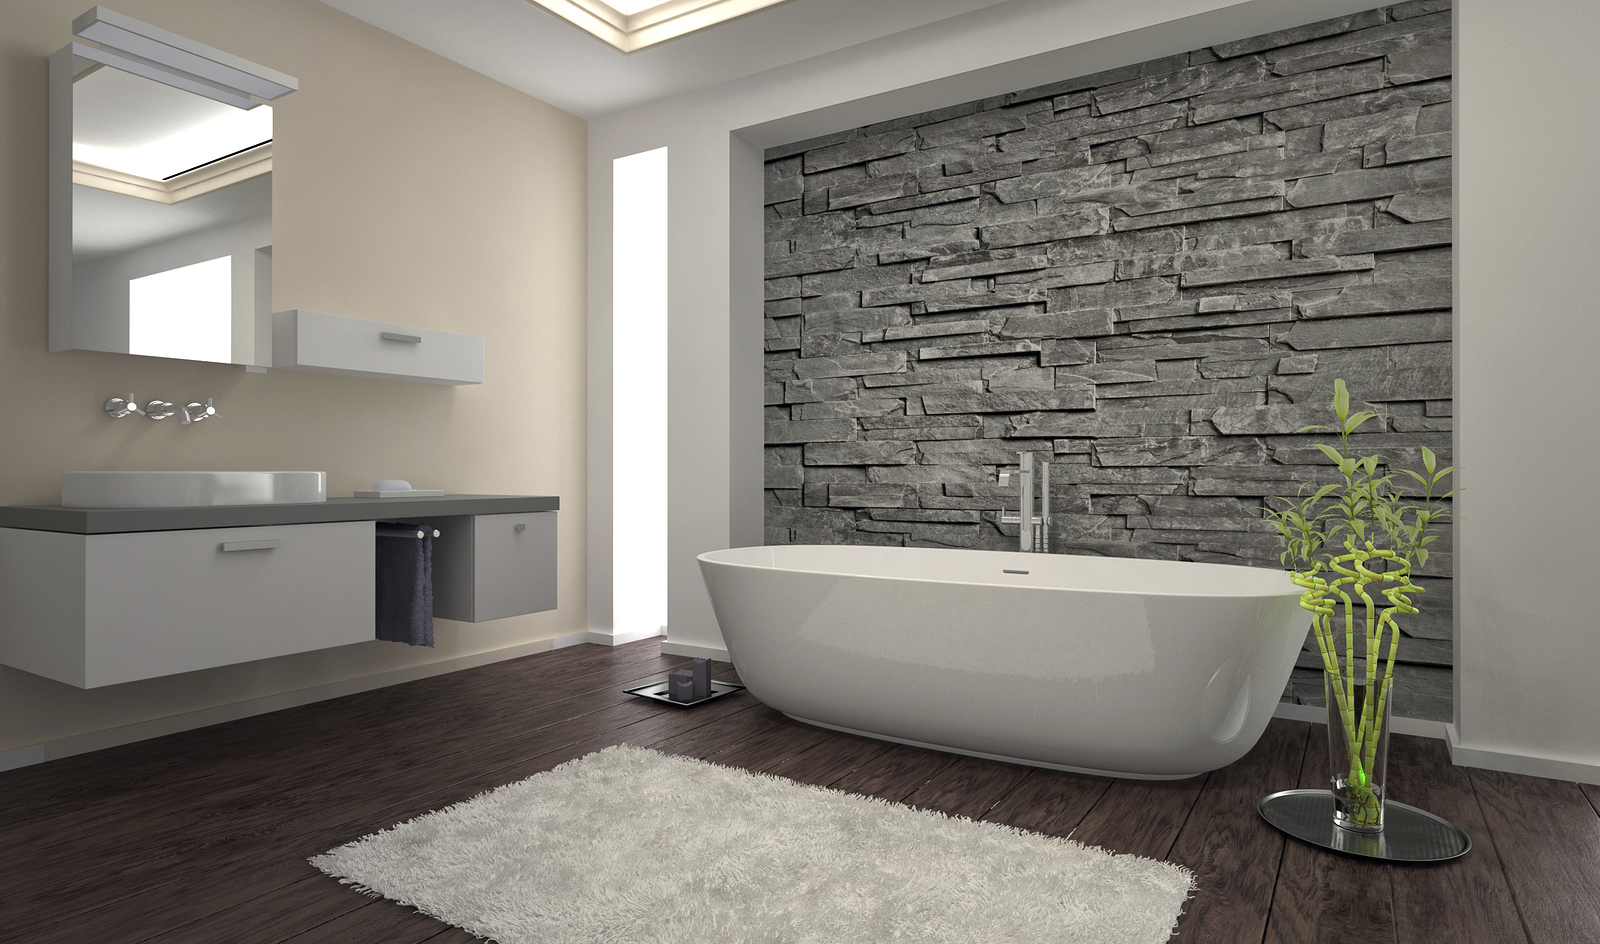 Superieur Bathroom Remodel Ideas 2014 Bathroom Color Trends